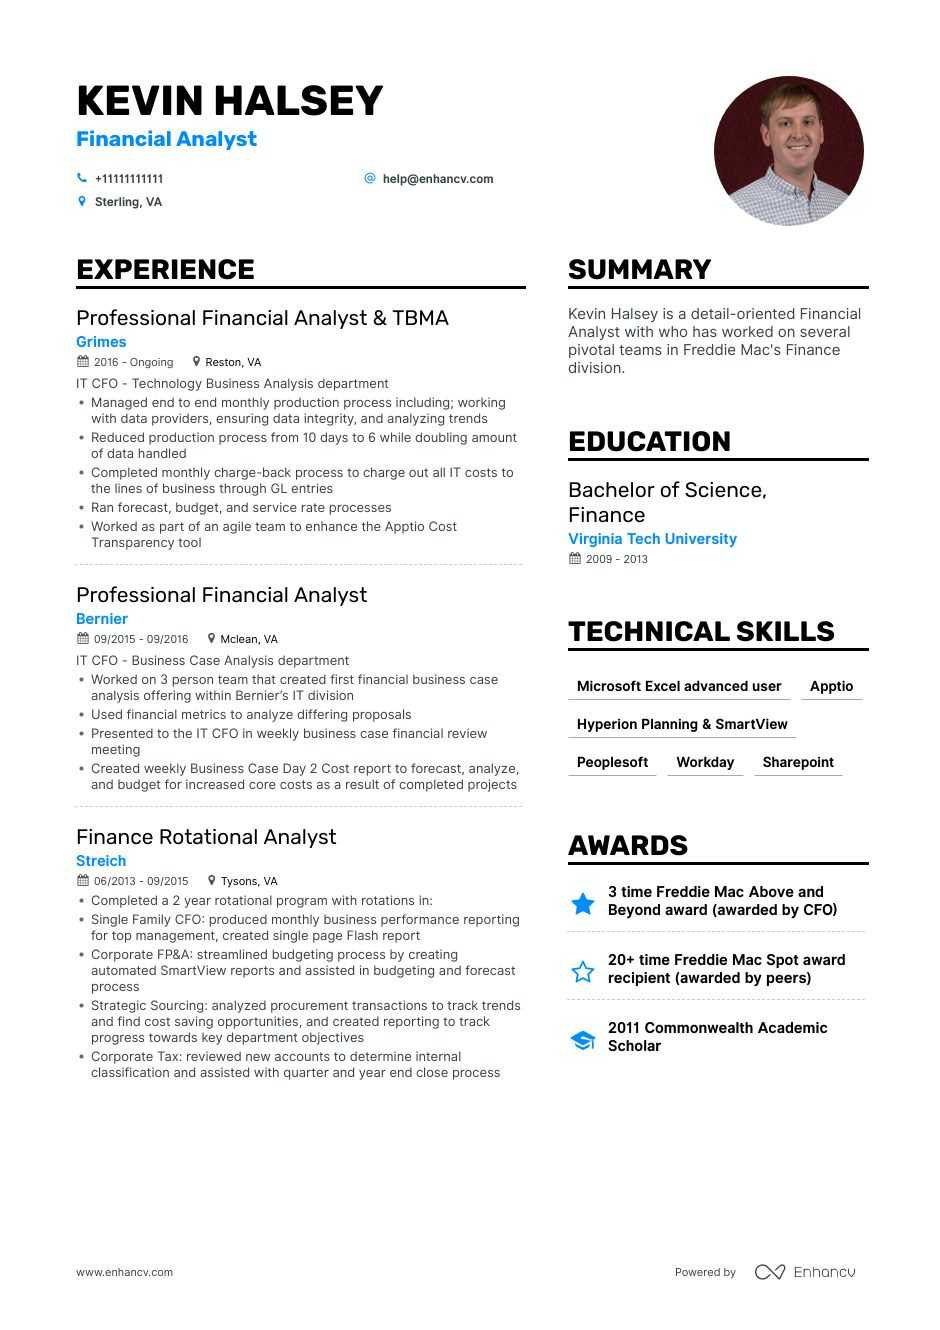 financial analyst resume example for enhancv template word jira business cfo cover letter Resume Financial Analyst Resume Template Word